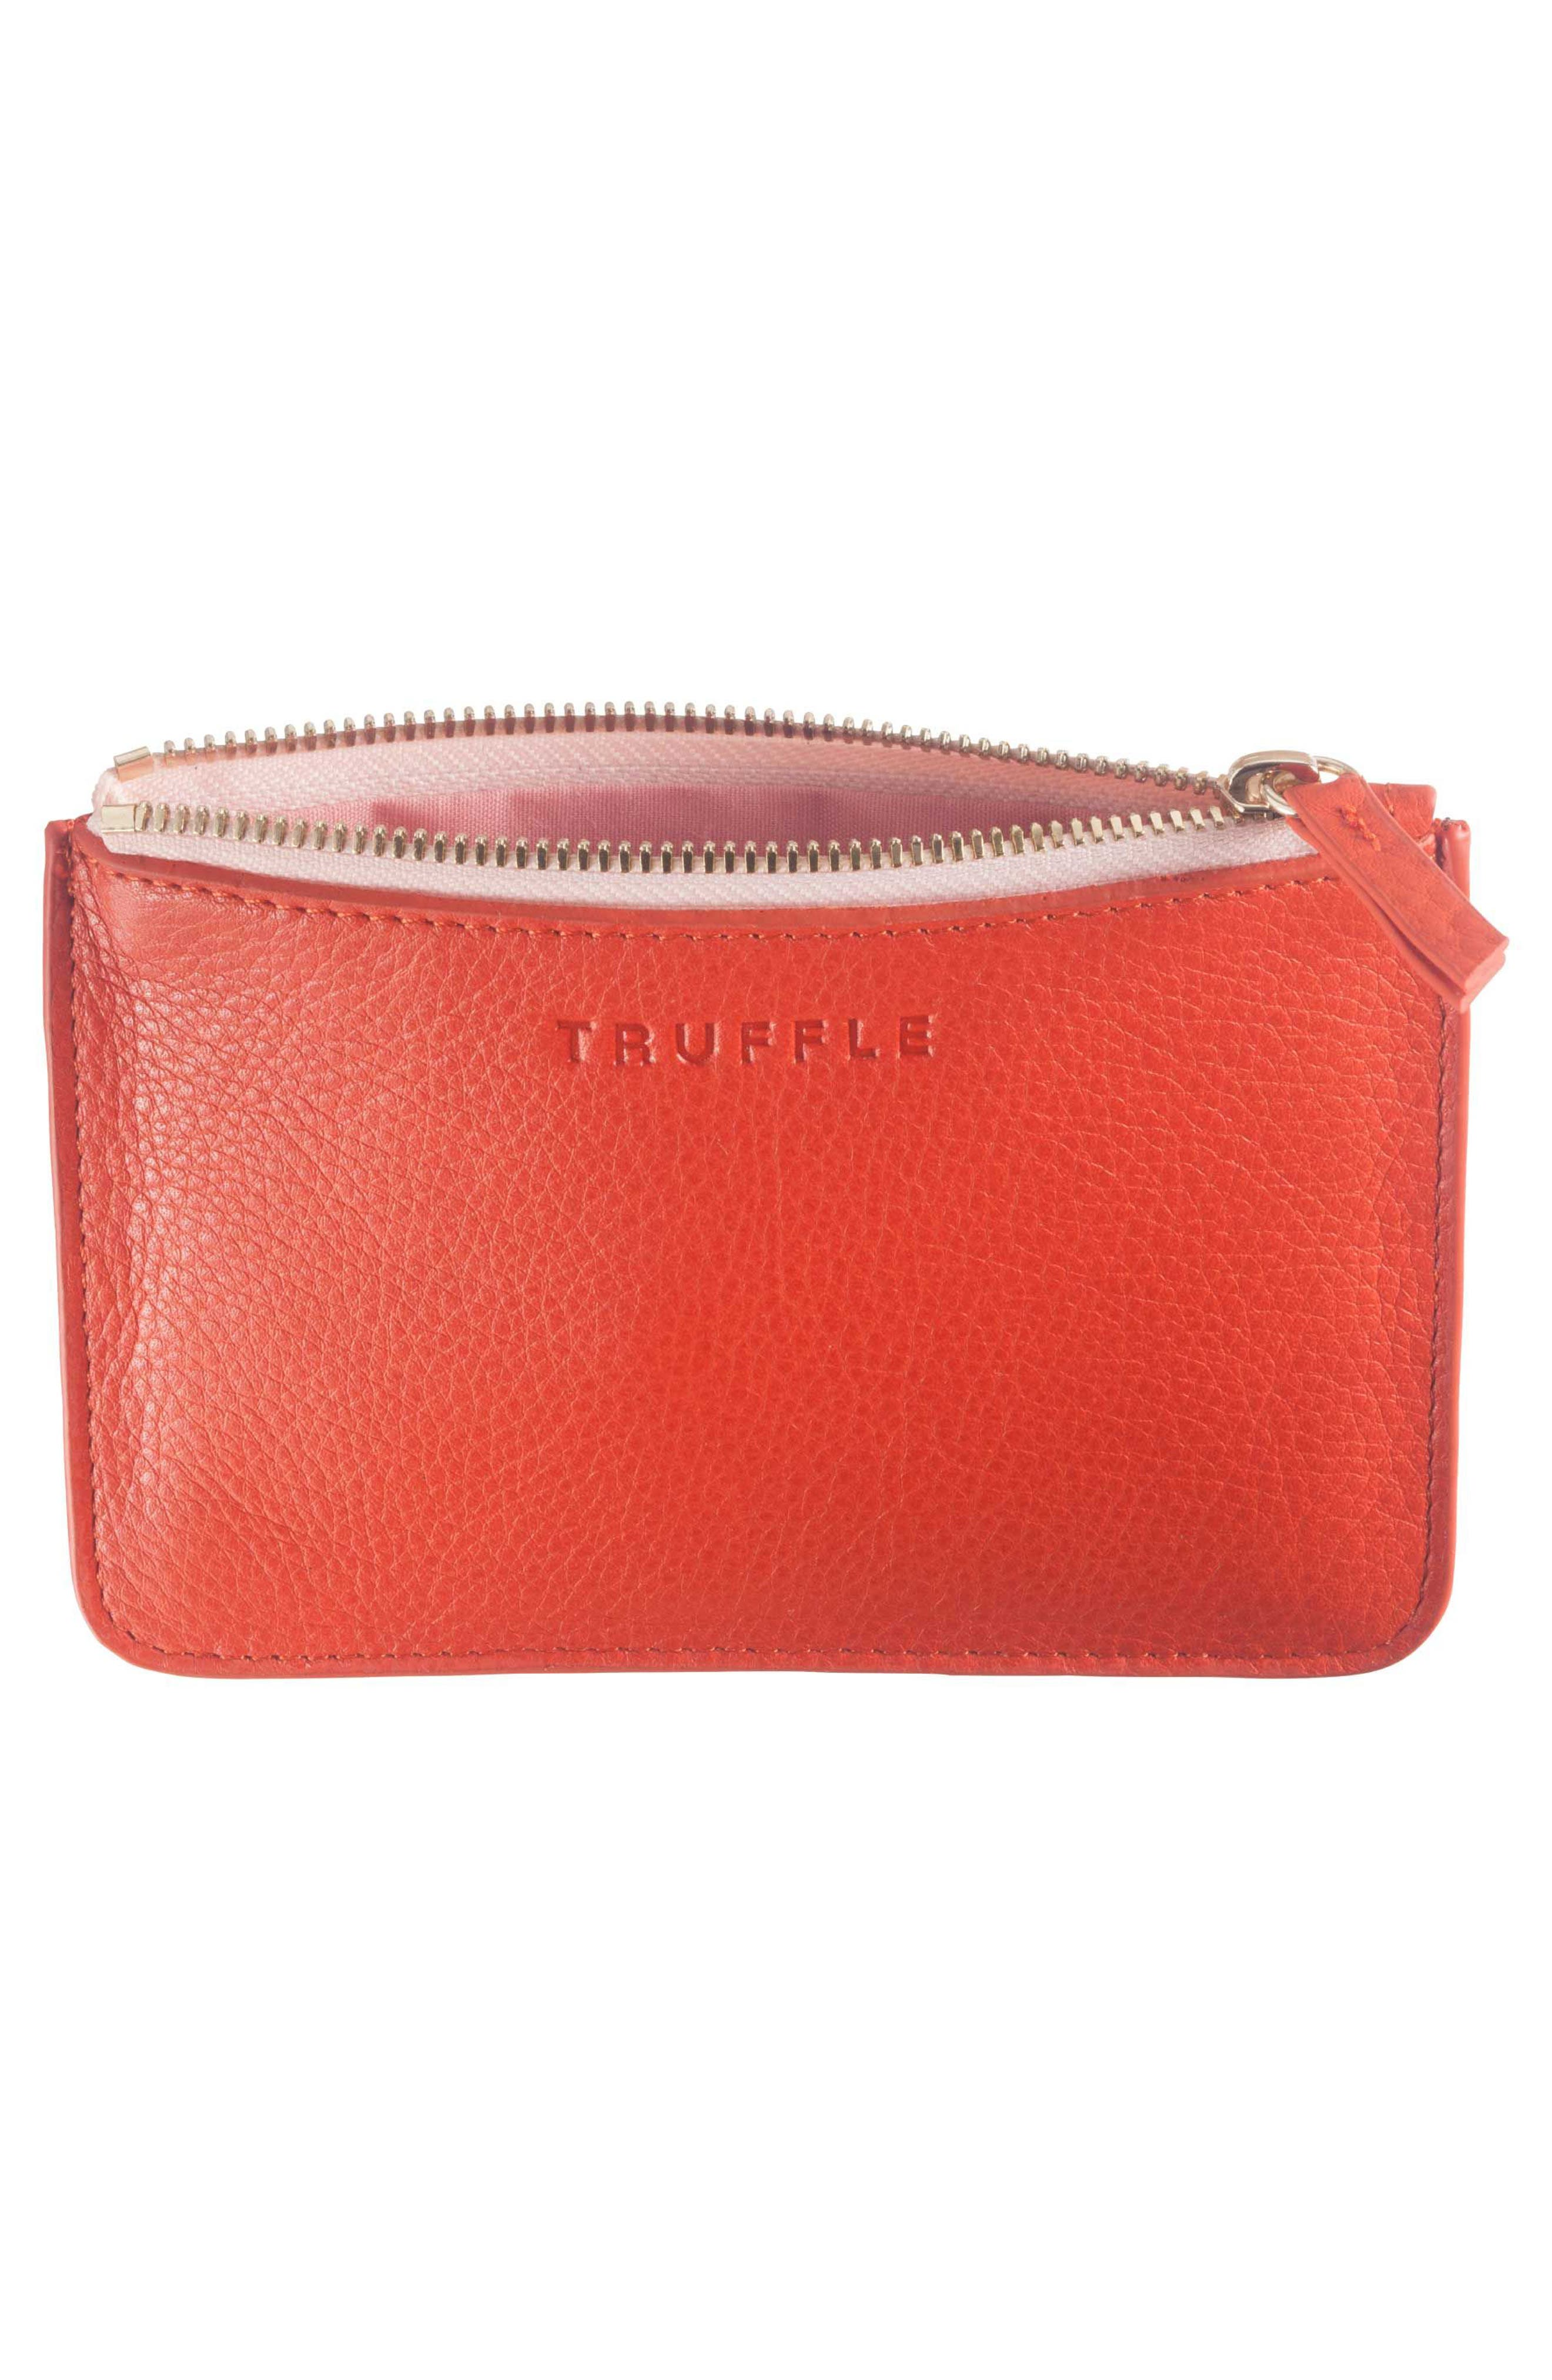 Privacy Leather Coin Pouch,                             Alternate thumbnail 3, color,                             Poppy